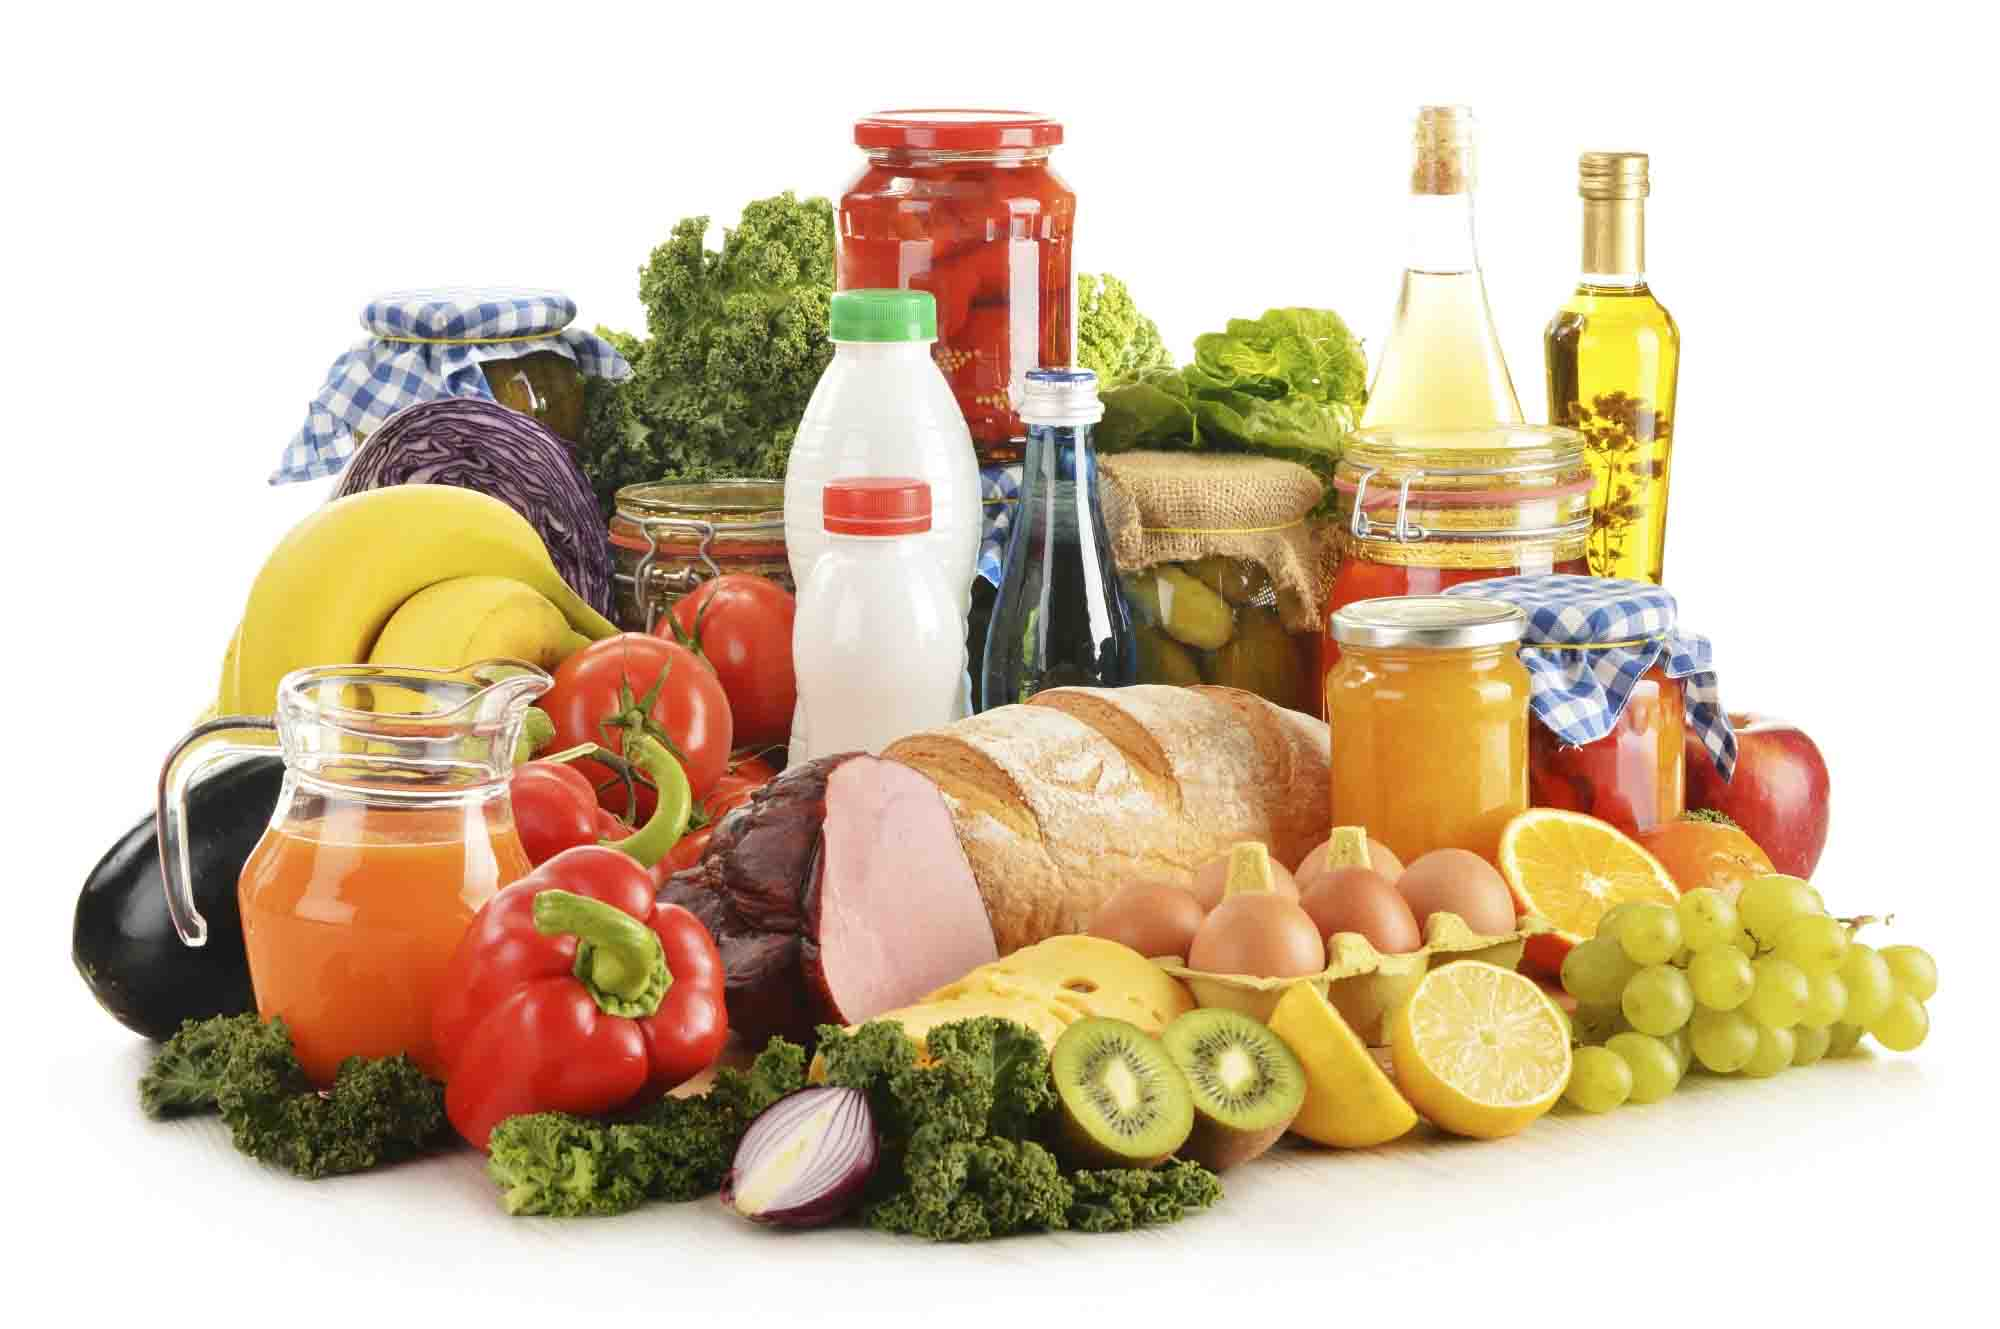 Food And Agriculture Products